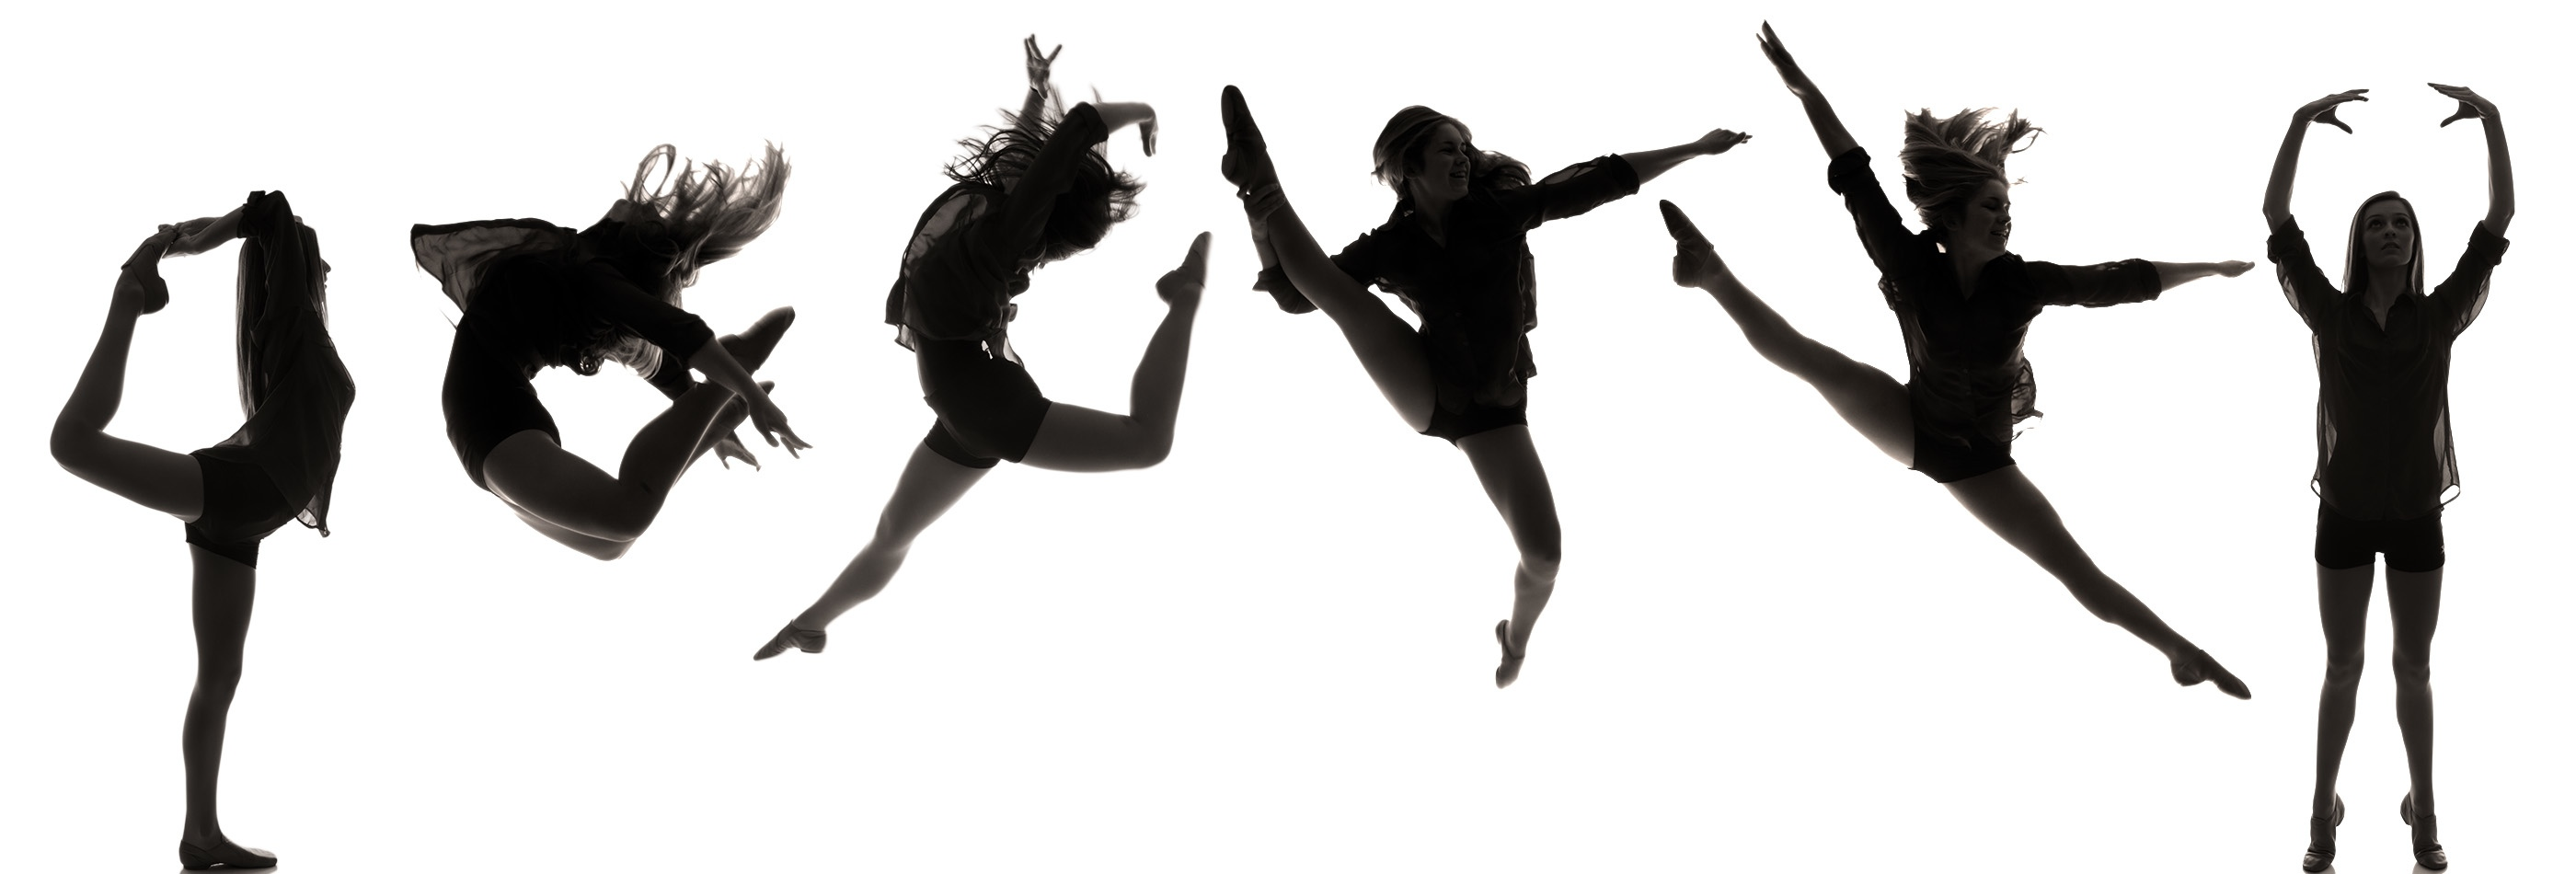 ... Dancing dancer clipart free clipart images image - Cliparting clipartall.com ...